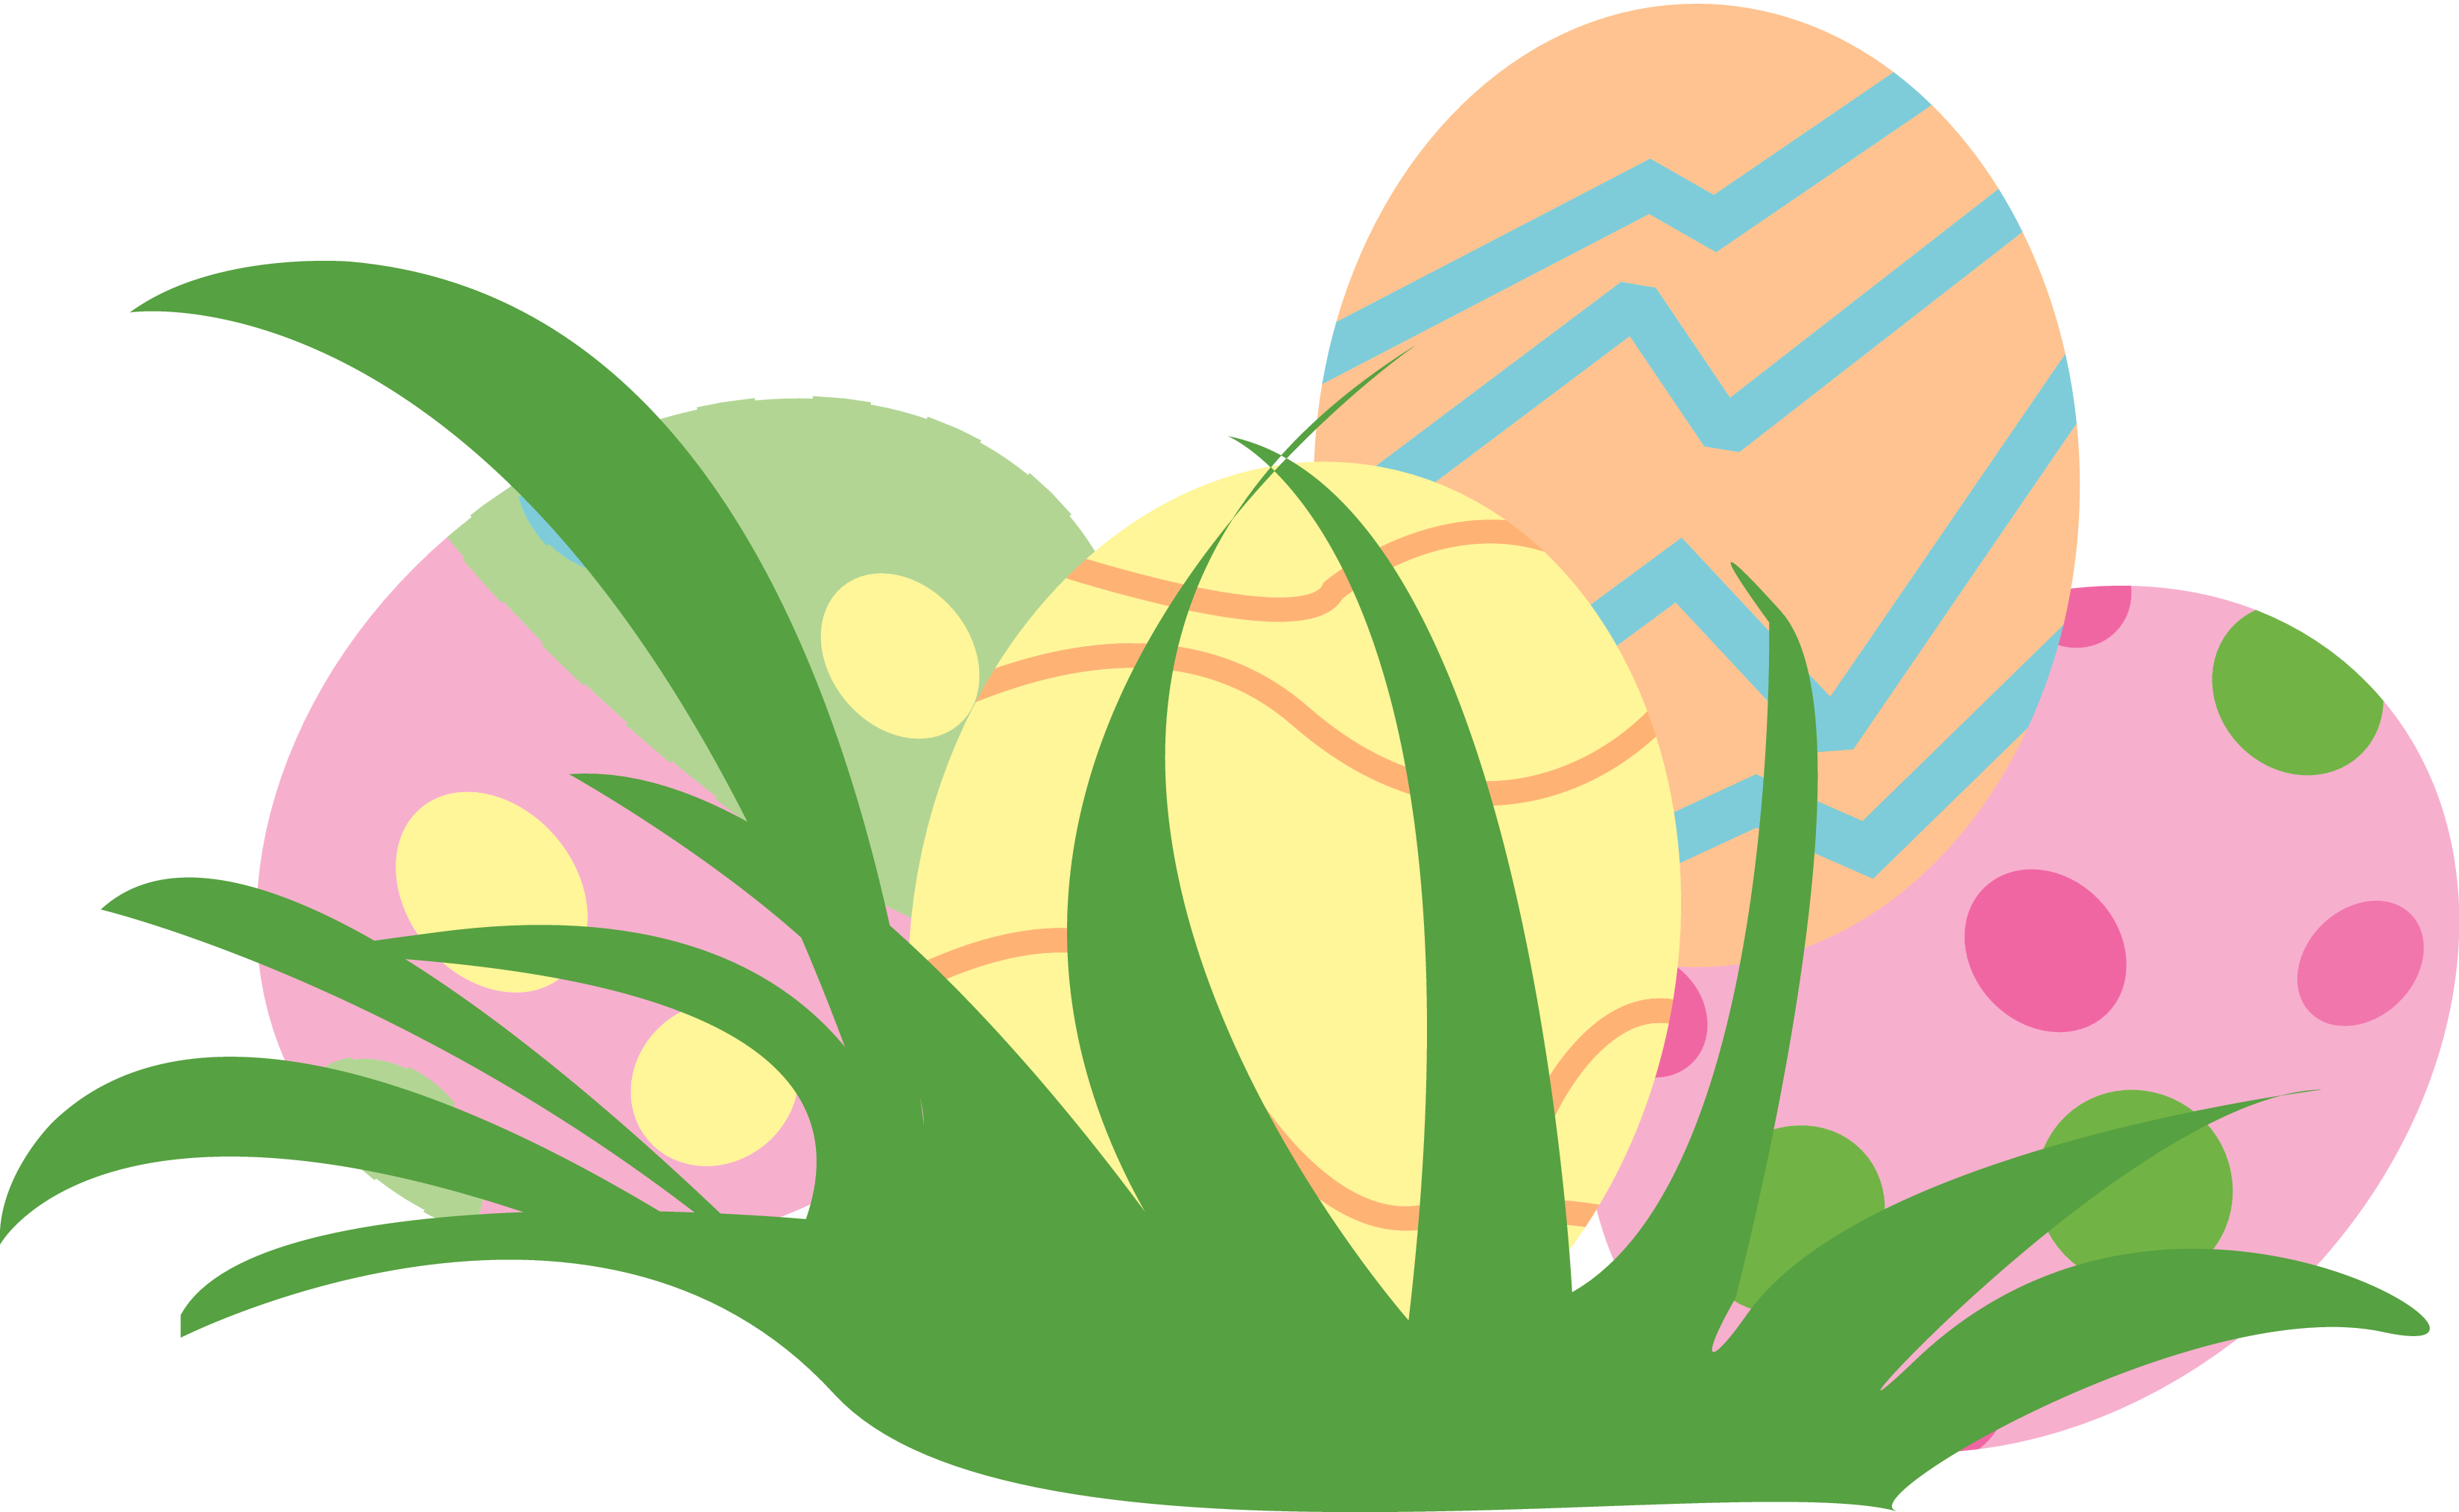 20 + Easter Clip Art Ideas With Image